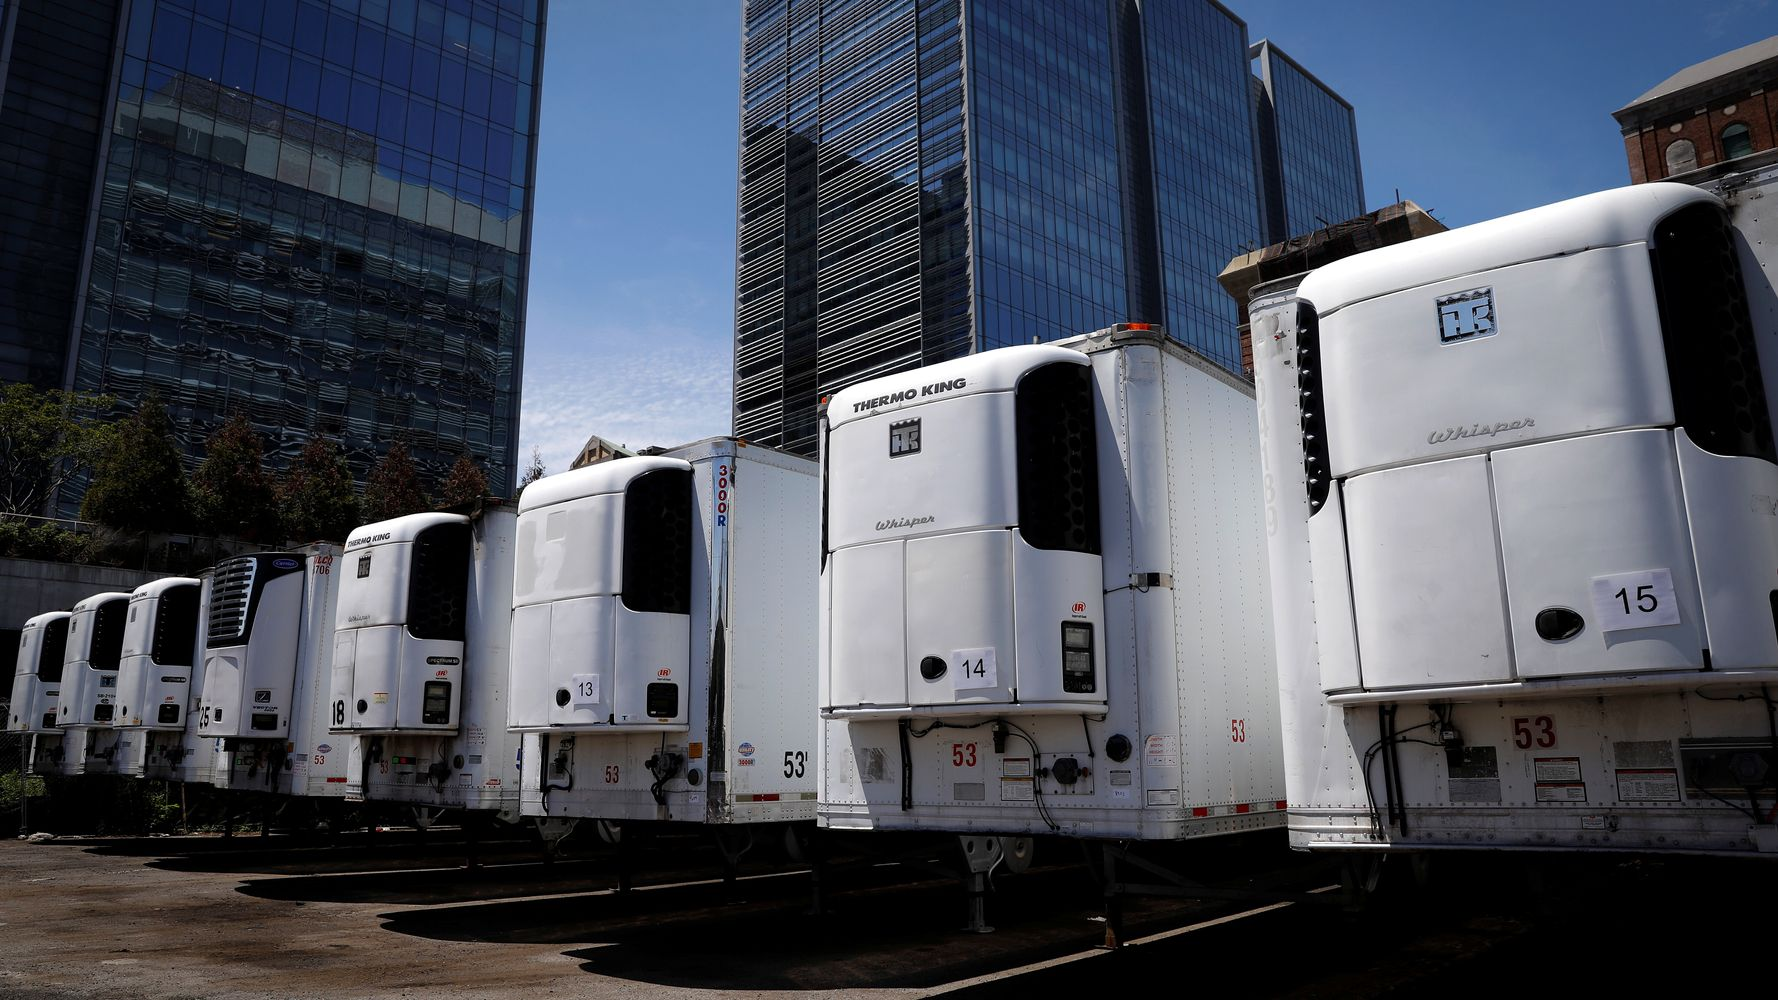 Phoenix, Texas Counties Order Morgue Trucks In Latest Grim Sign Of Rising COVID-19 Rates